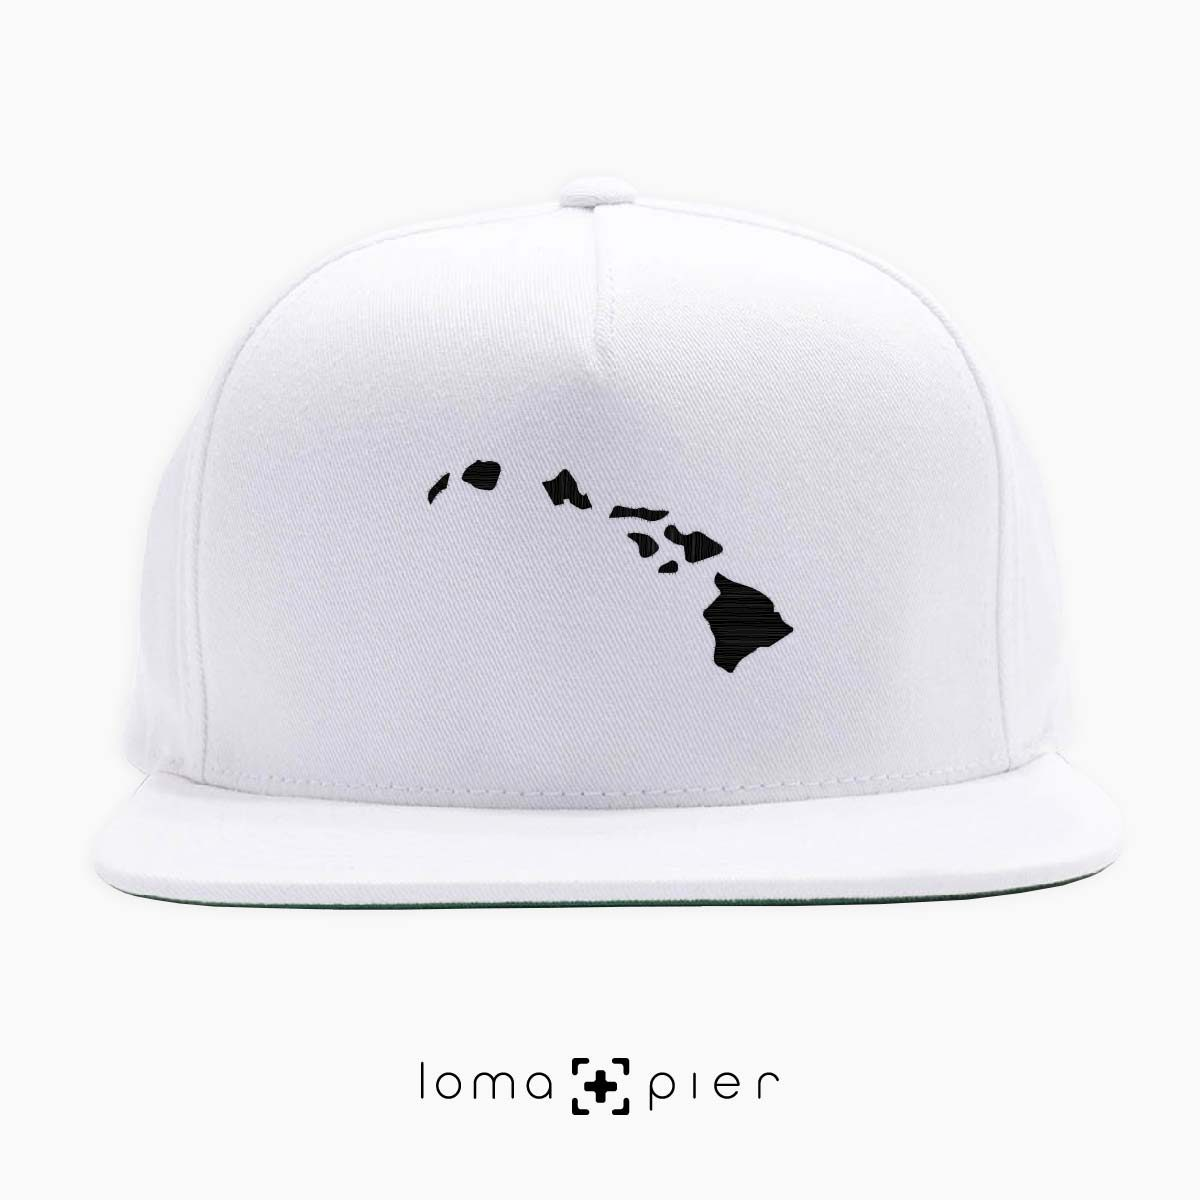 HAWAIIAN ISLANDS icon embroidered on a white classic snapback hat by loma+pier hat store